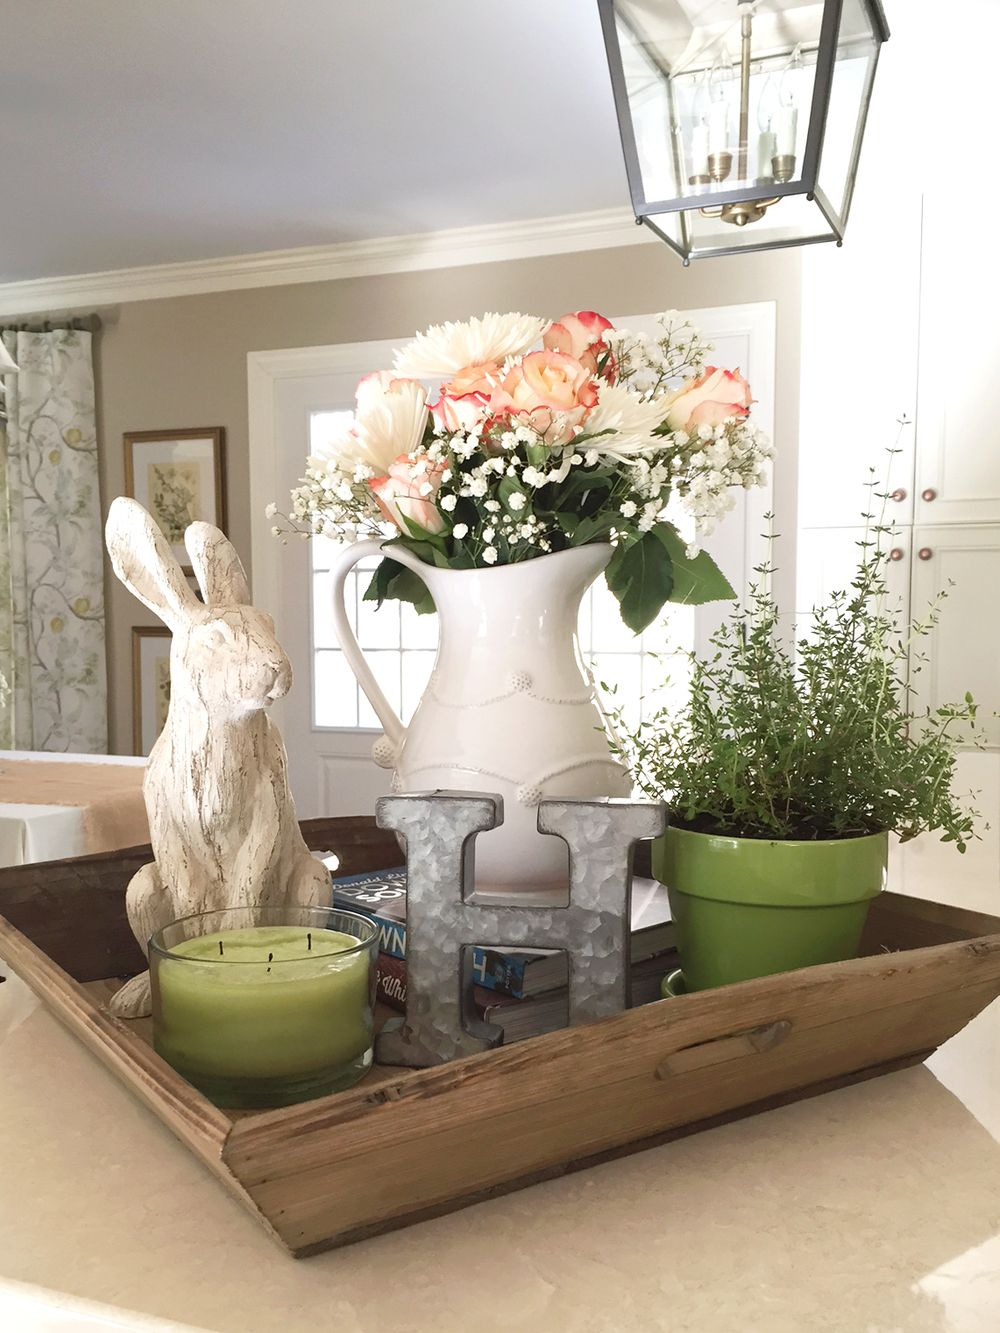 Tips For Creating An Easter Vignette A Wonderful Thought Spring Easter Decor Spring Decor Table Decorations